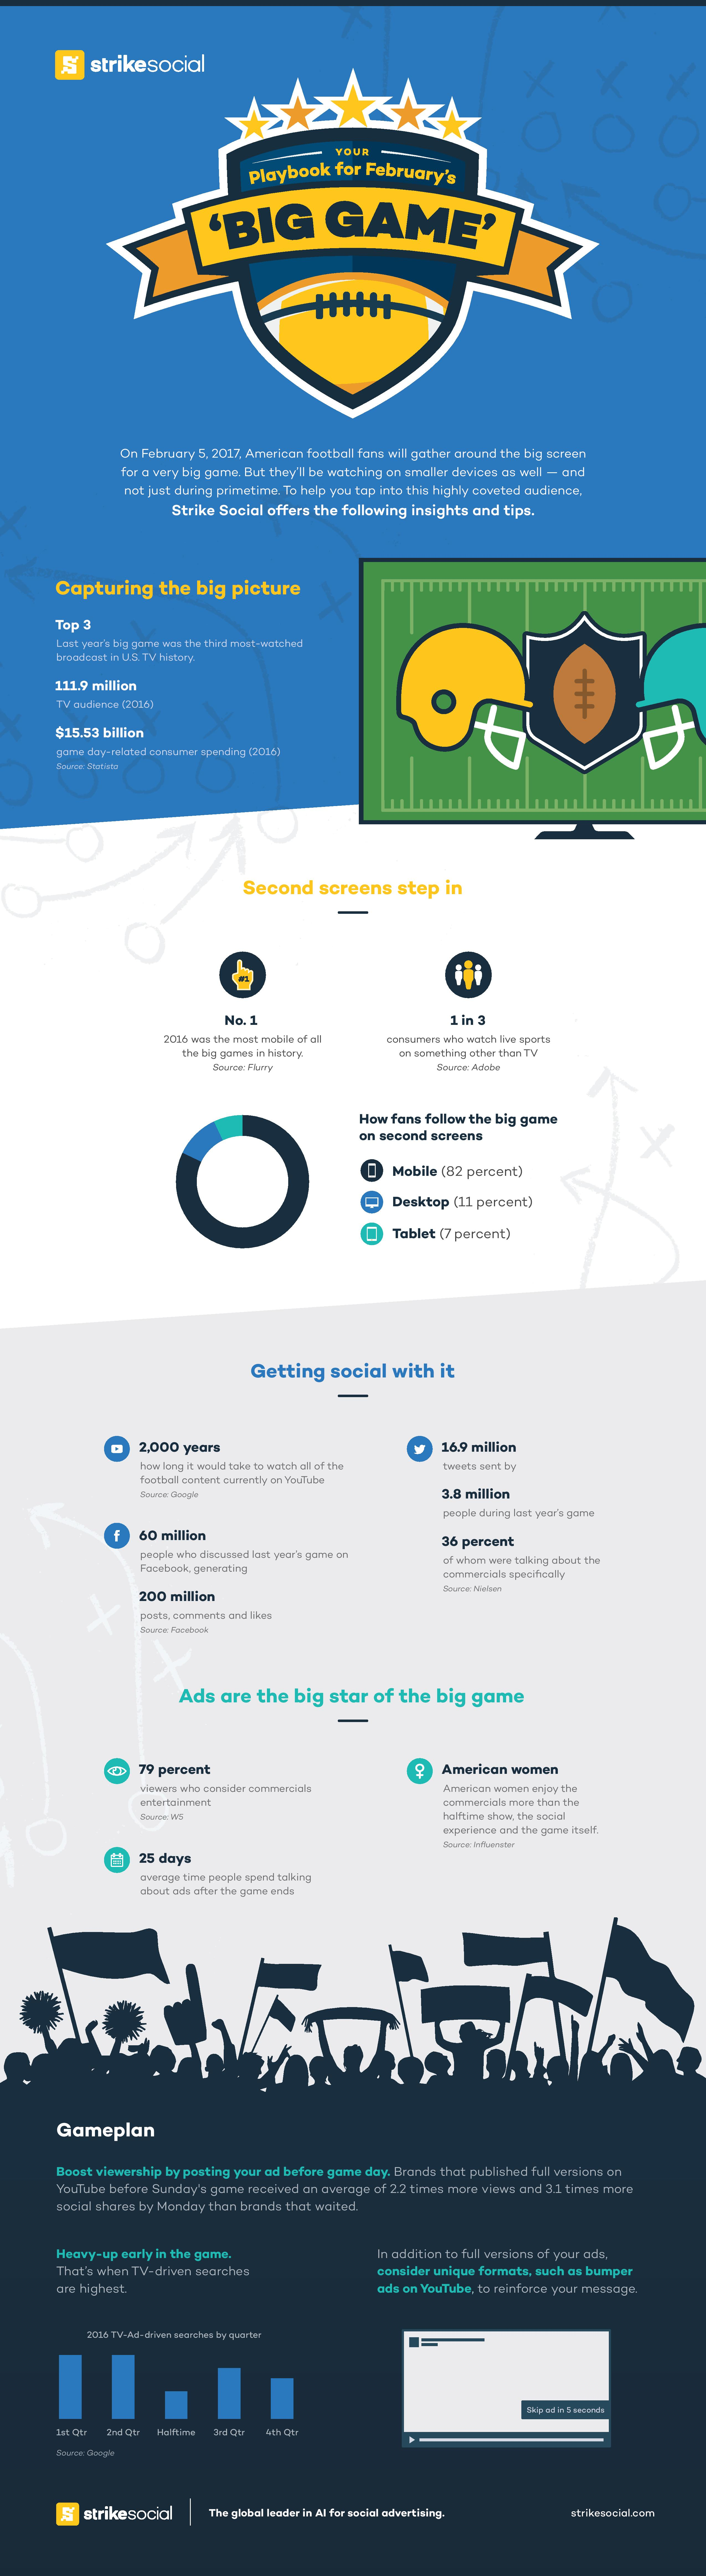 Strike Social Superbowl Infographic 2017